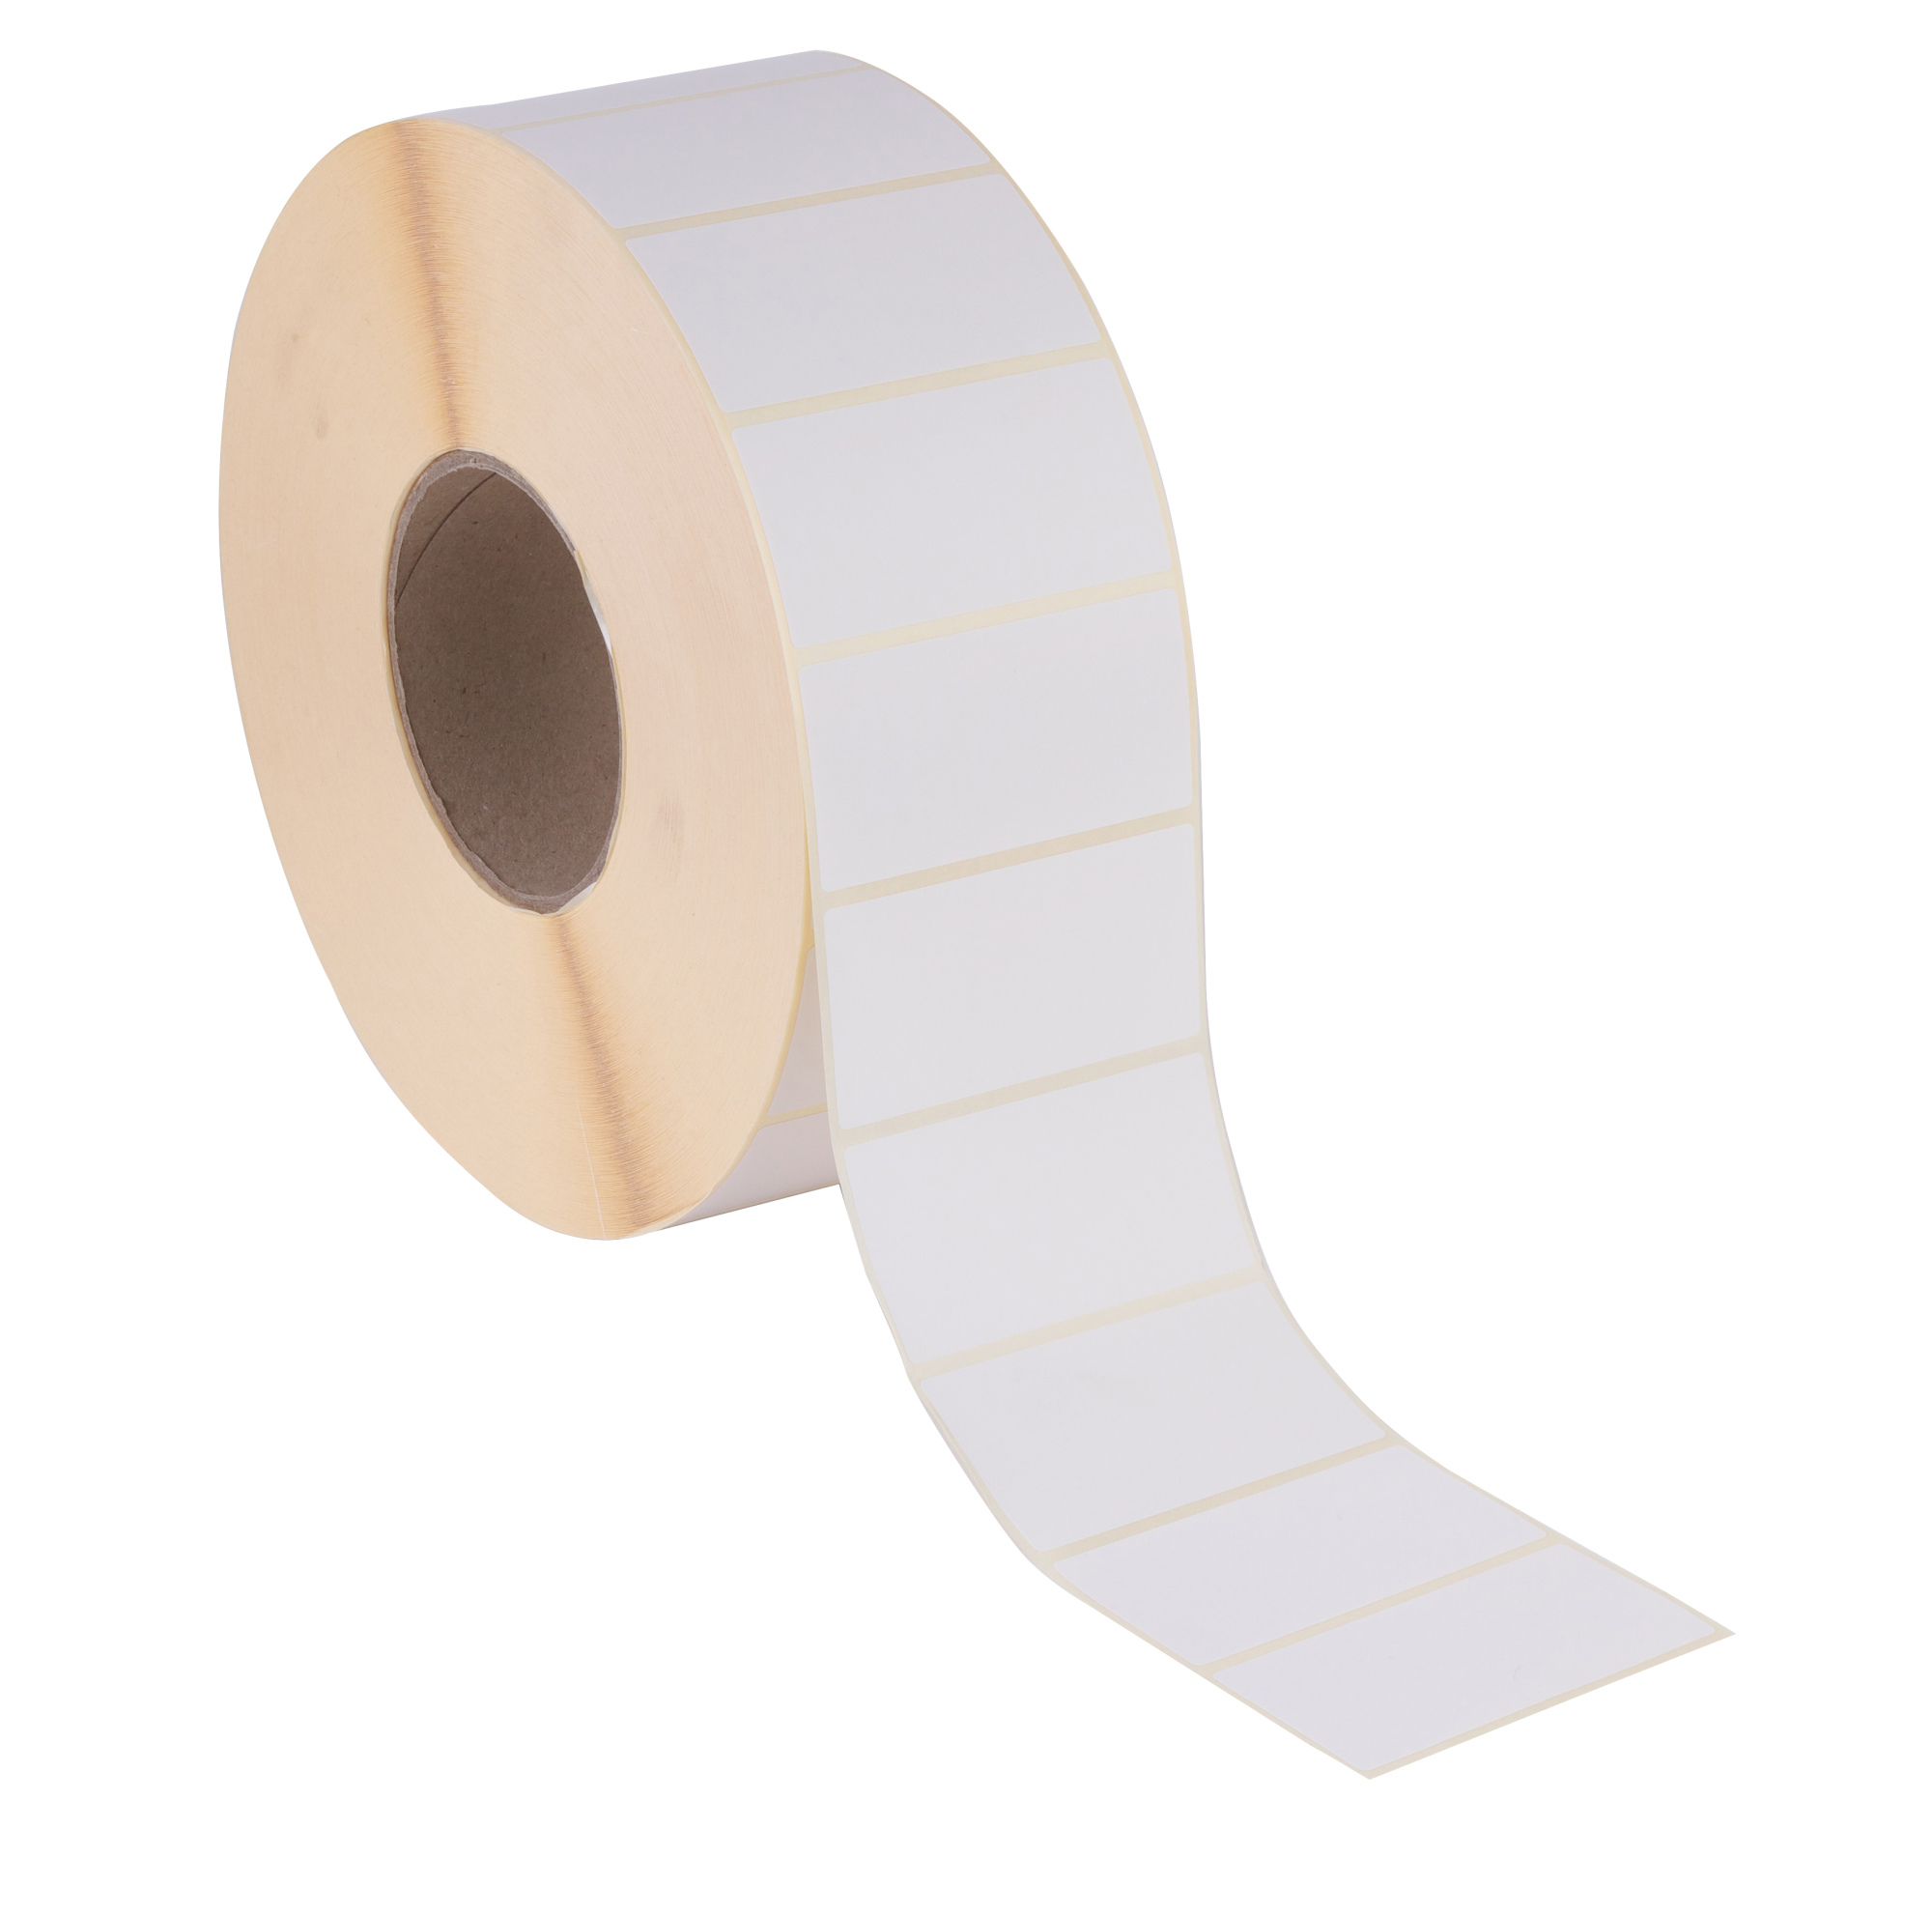 76 x 51mm Plain White Thermal Direct Printer Labels